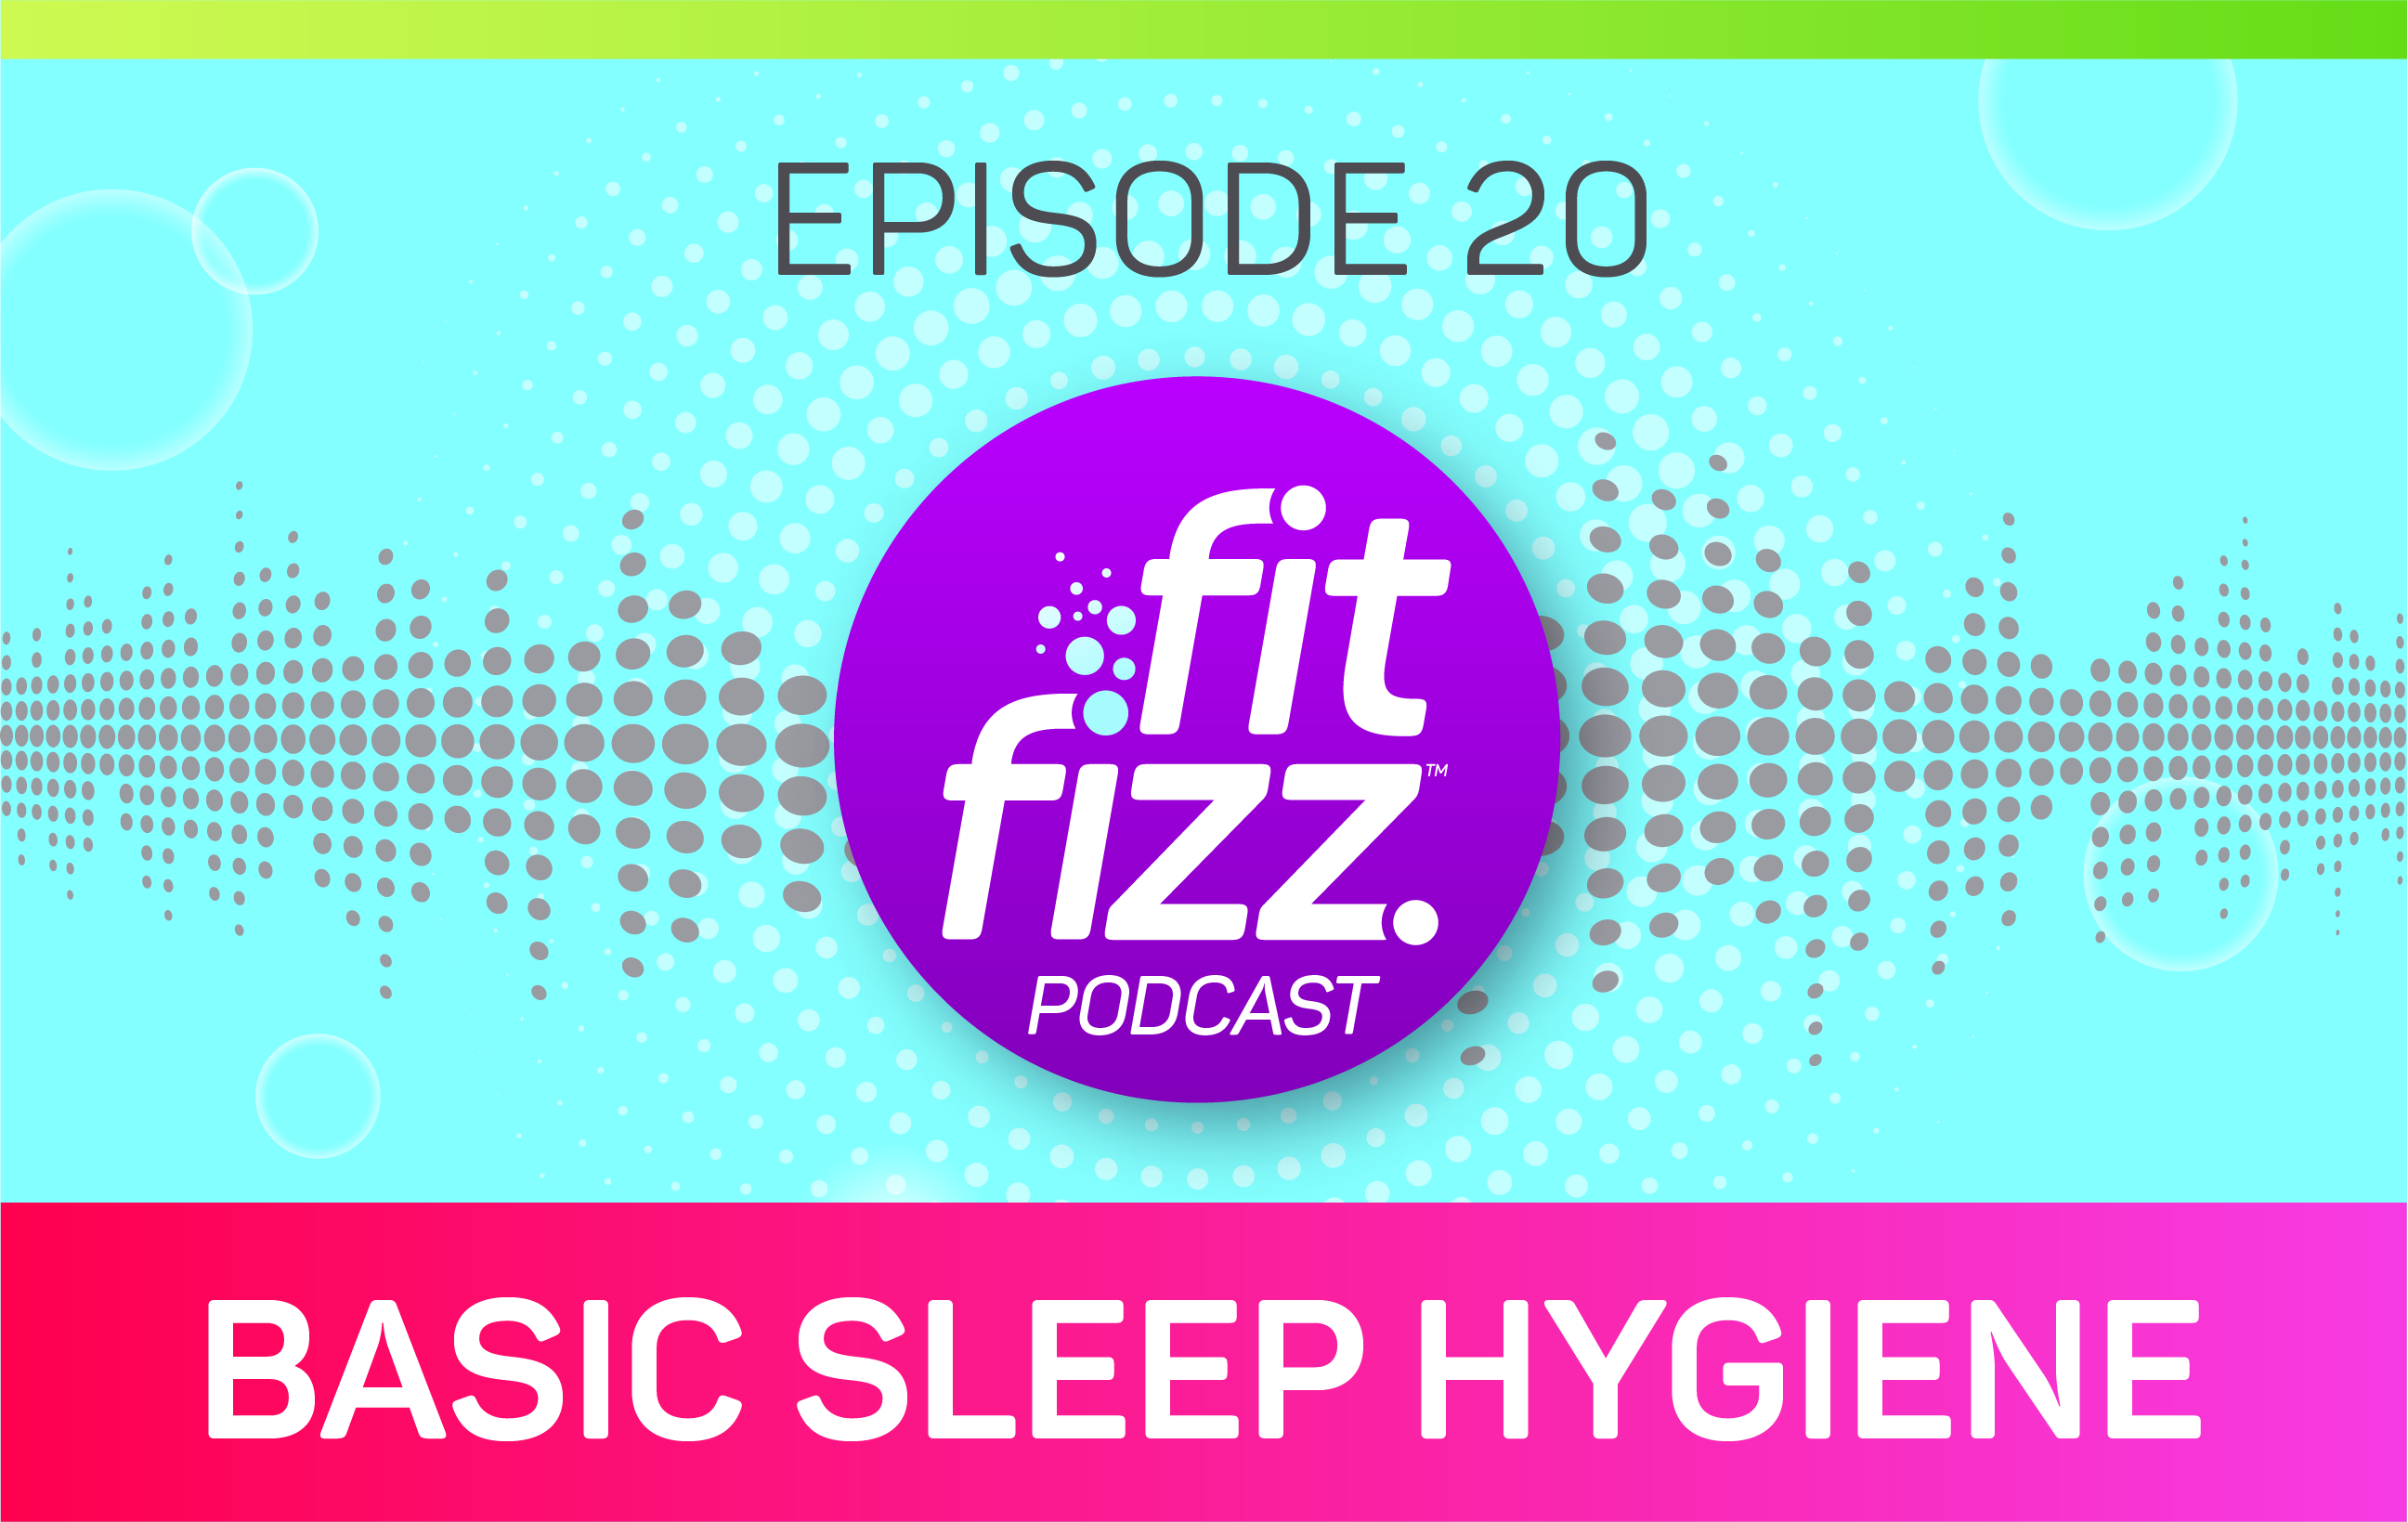 EP 20: Basic Sleep Hygiene